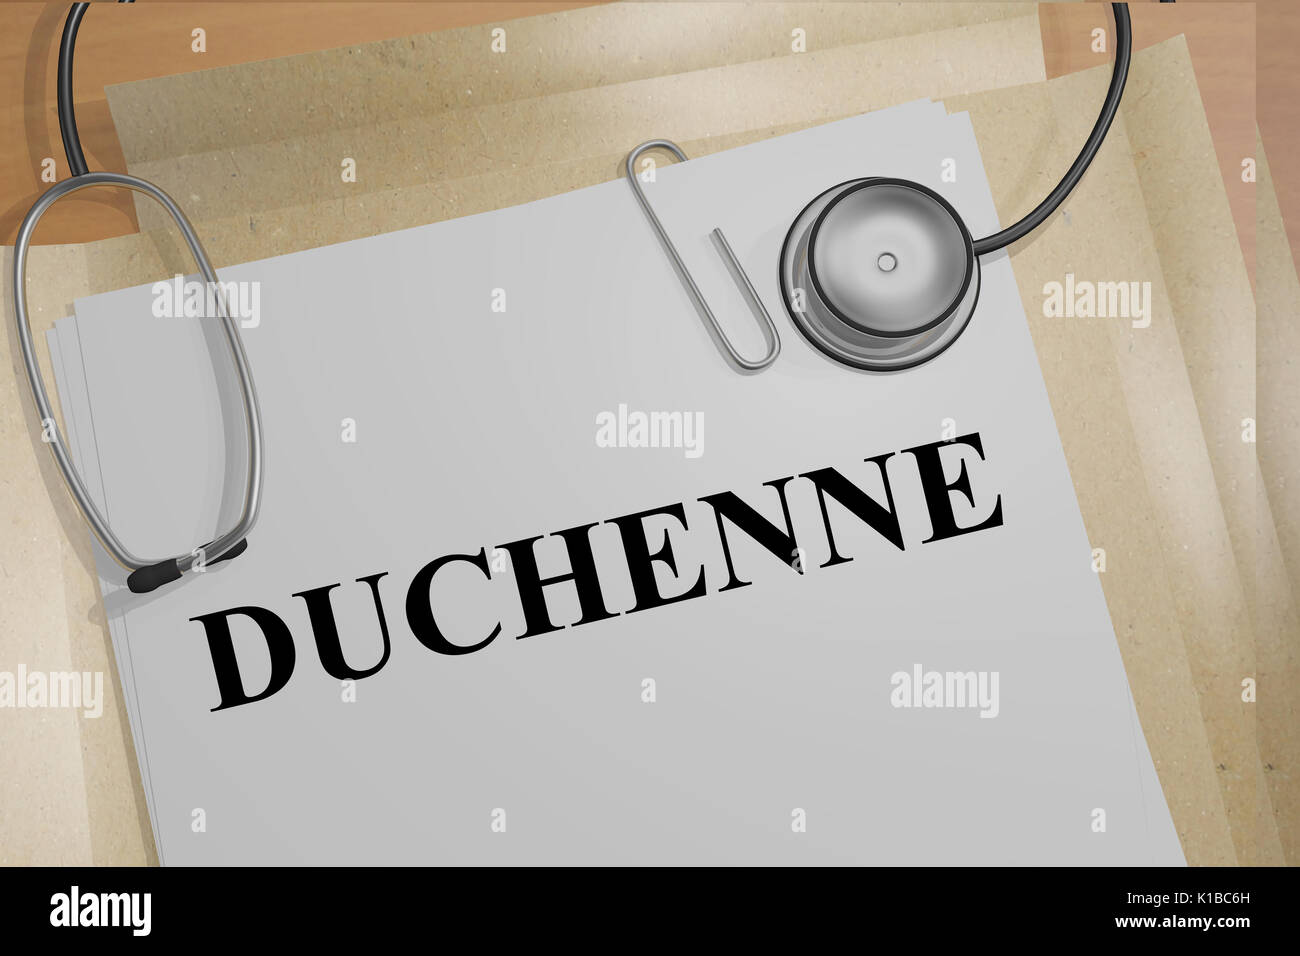 3D illustration of 'DUCHENNE' title on medical documents. Medicial concept. - Stock Image